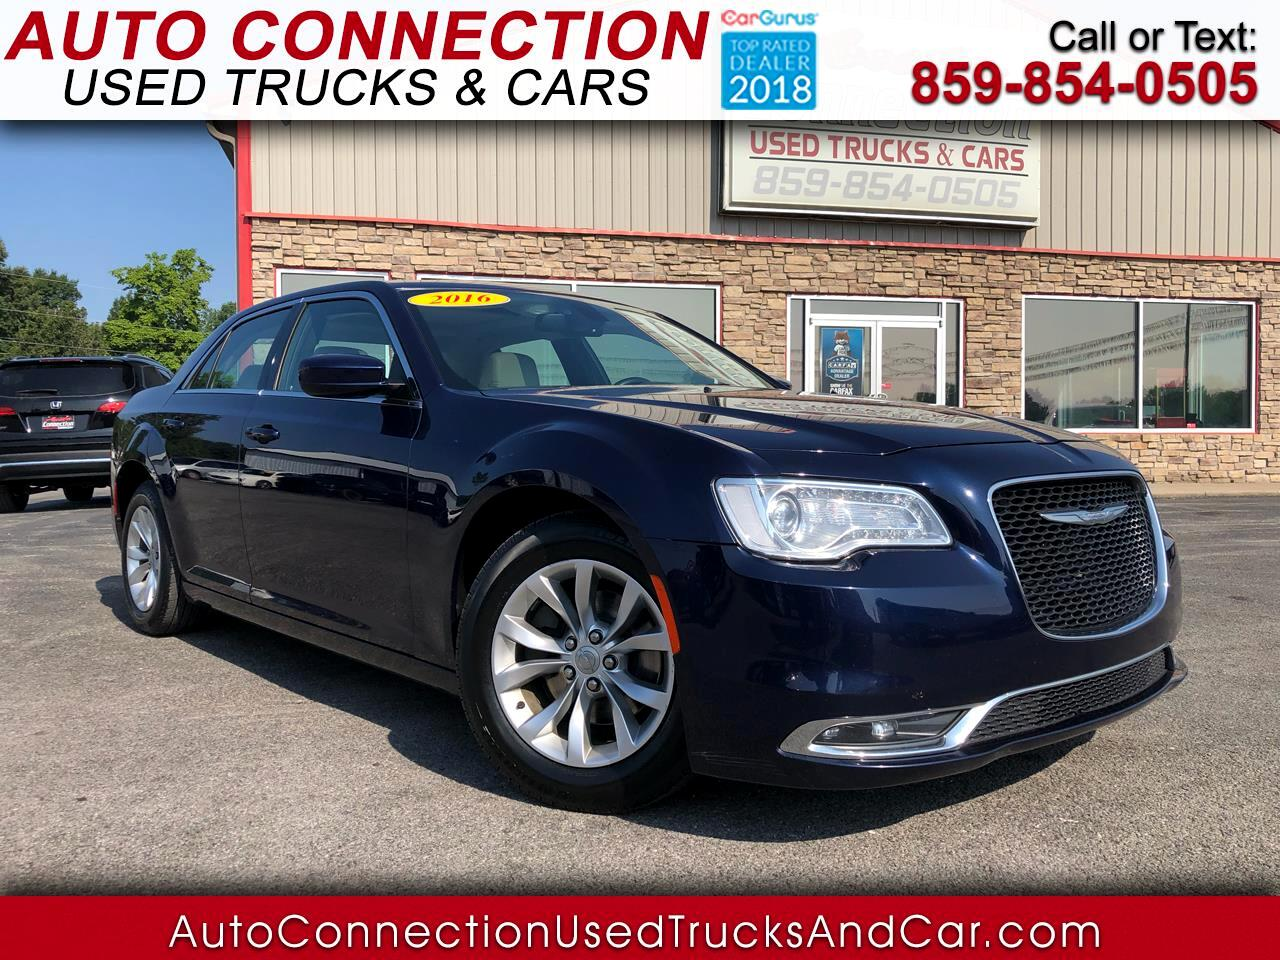 2016 Chrysler 300 4dr Sdn Anniversary Edition RWD